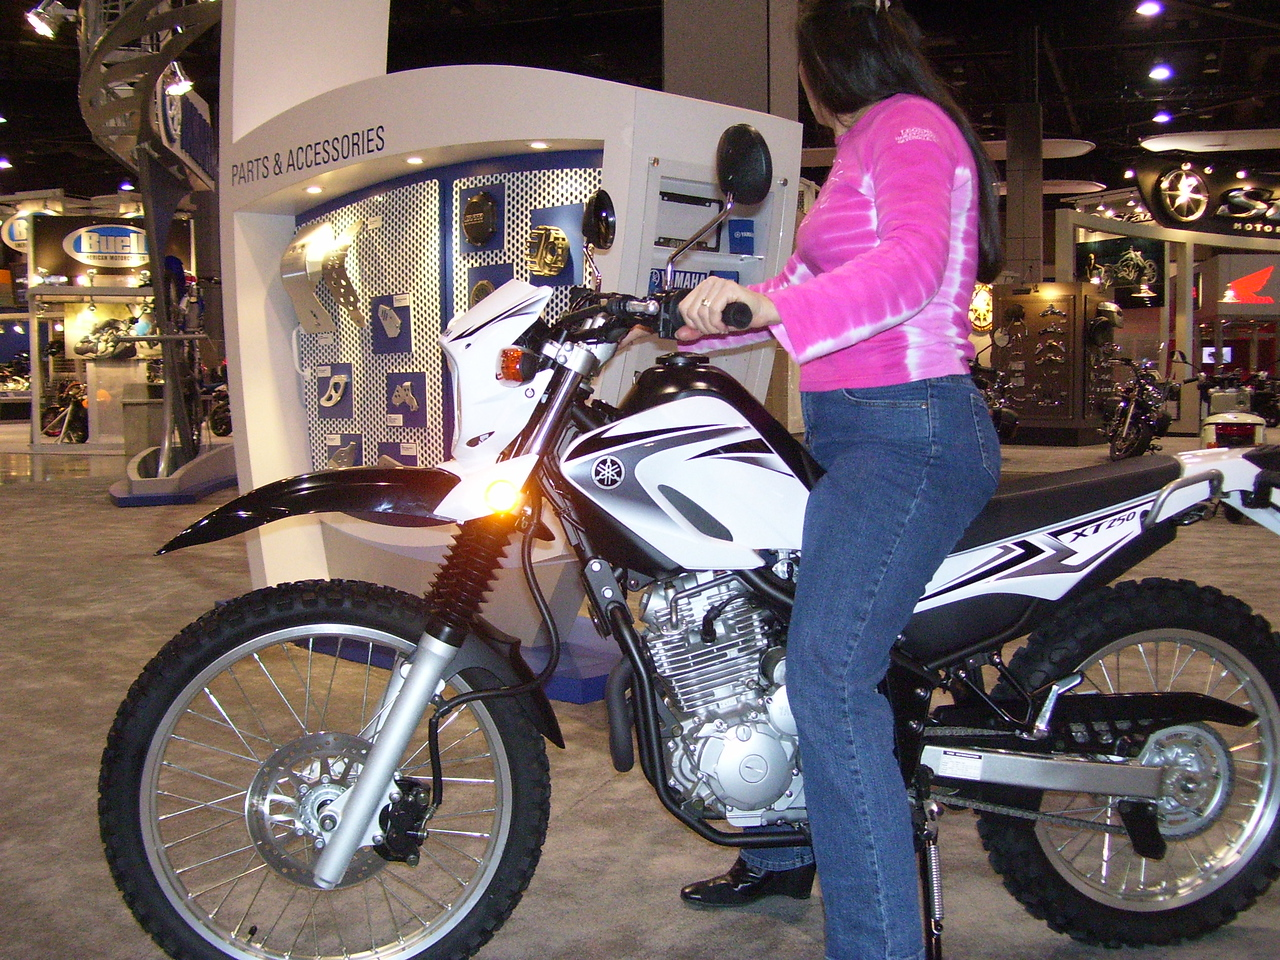 This is about it for short legs. The Yamaha XT250 is new this year but quite simular to the old XT 225. They added a disk brake to the rear and looks like a plastic tank.